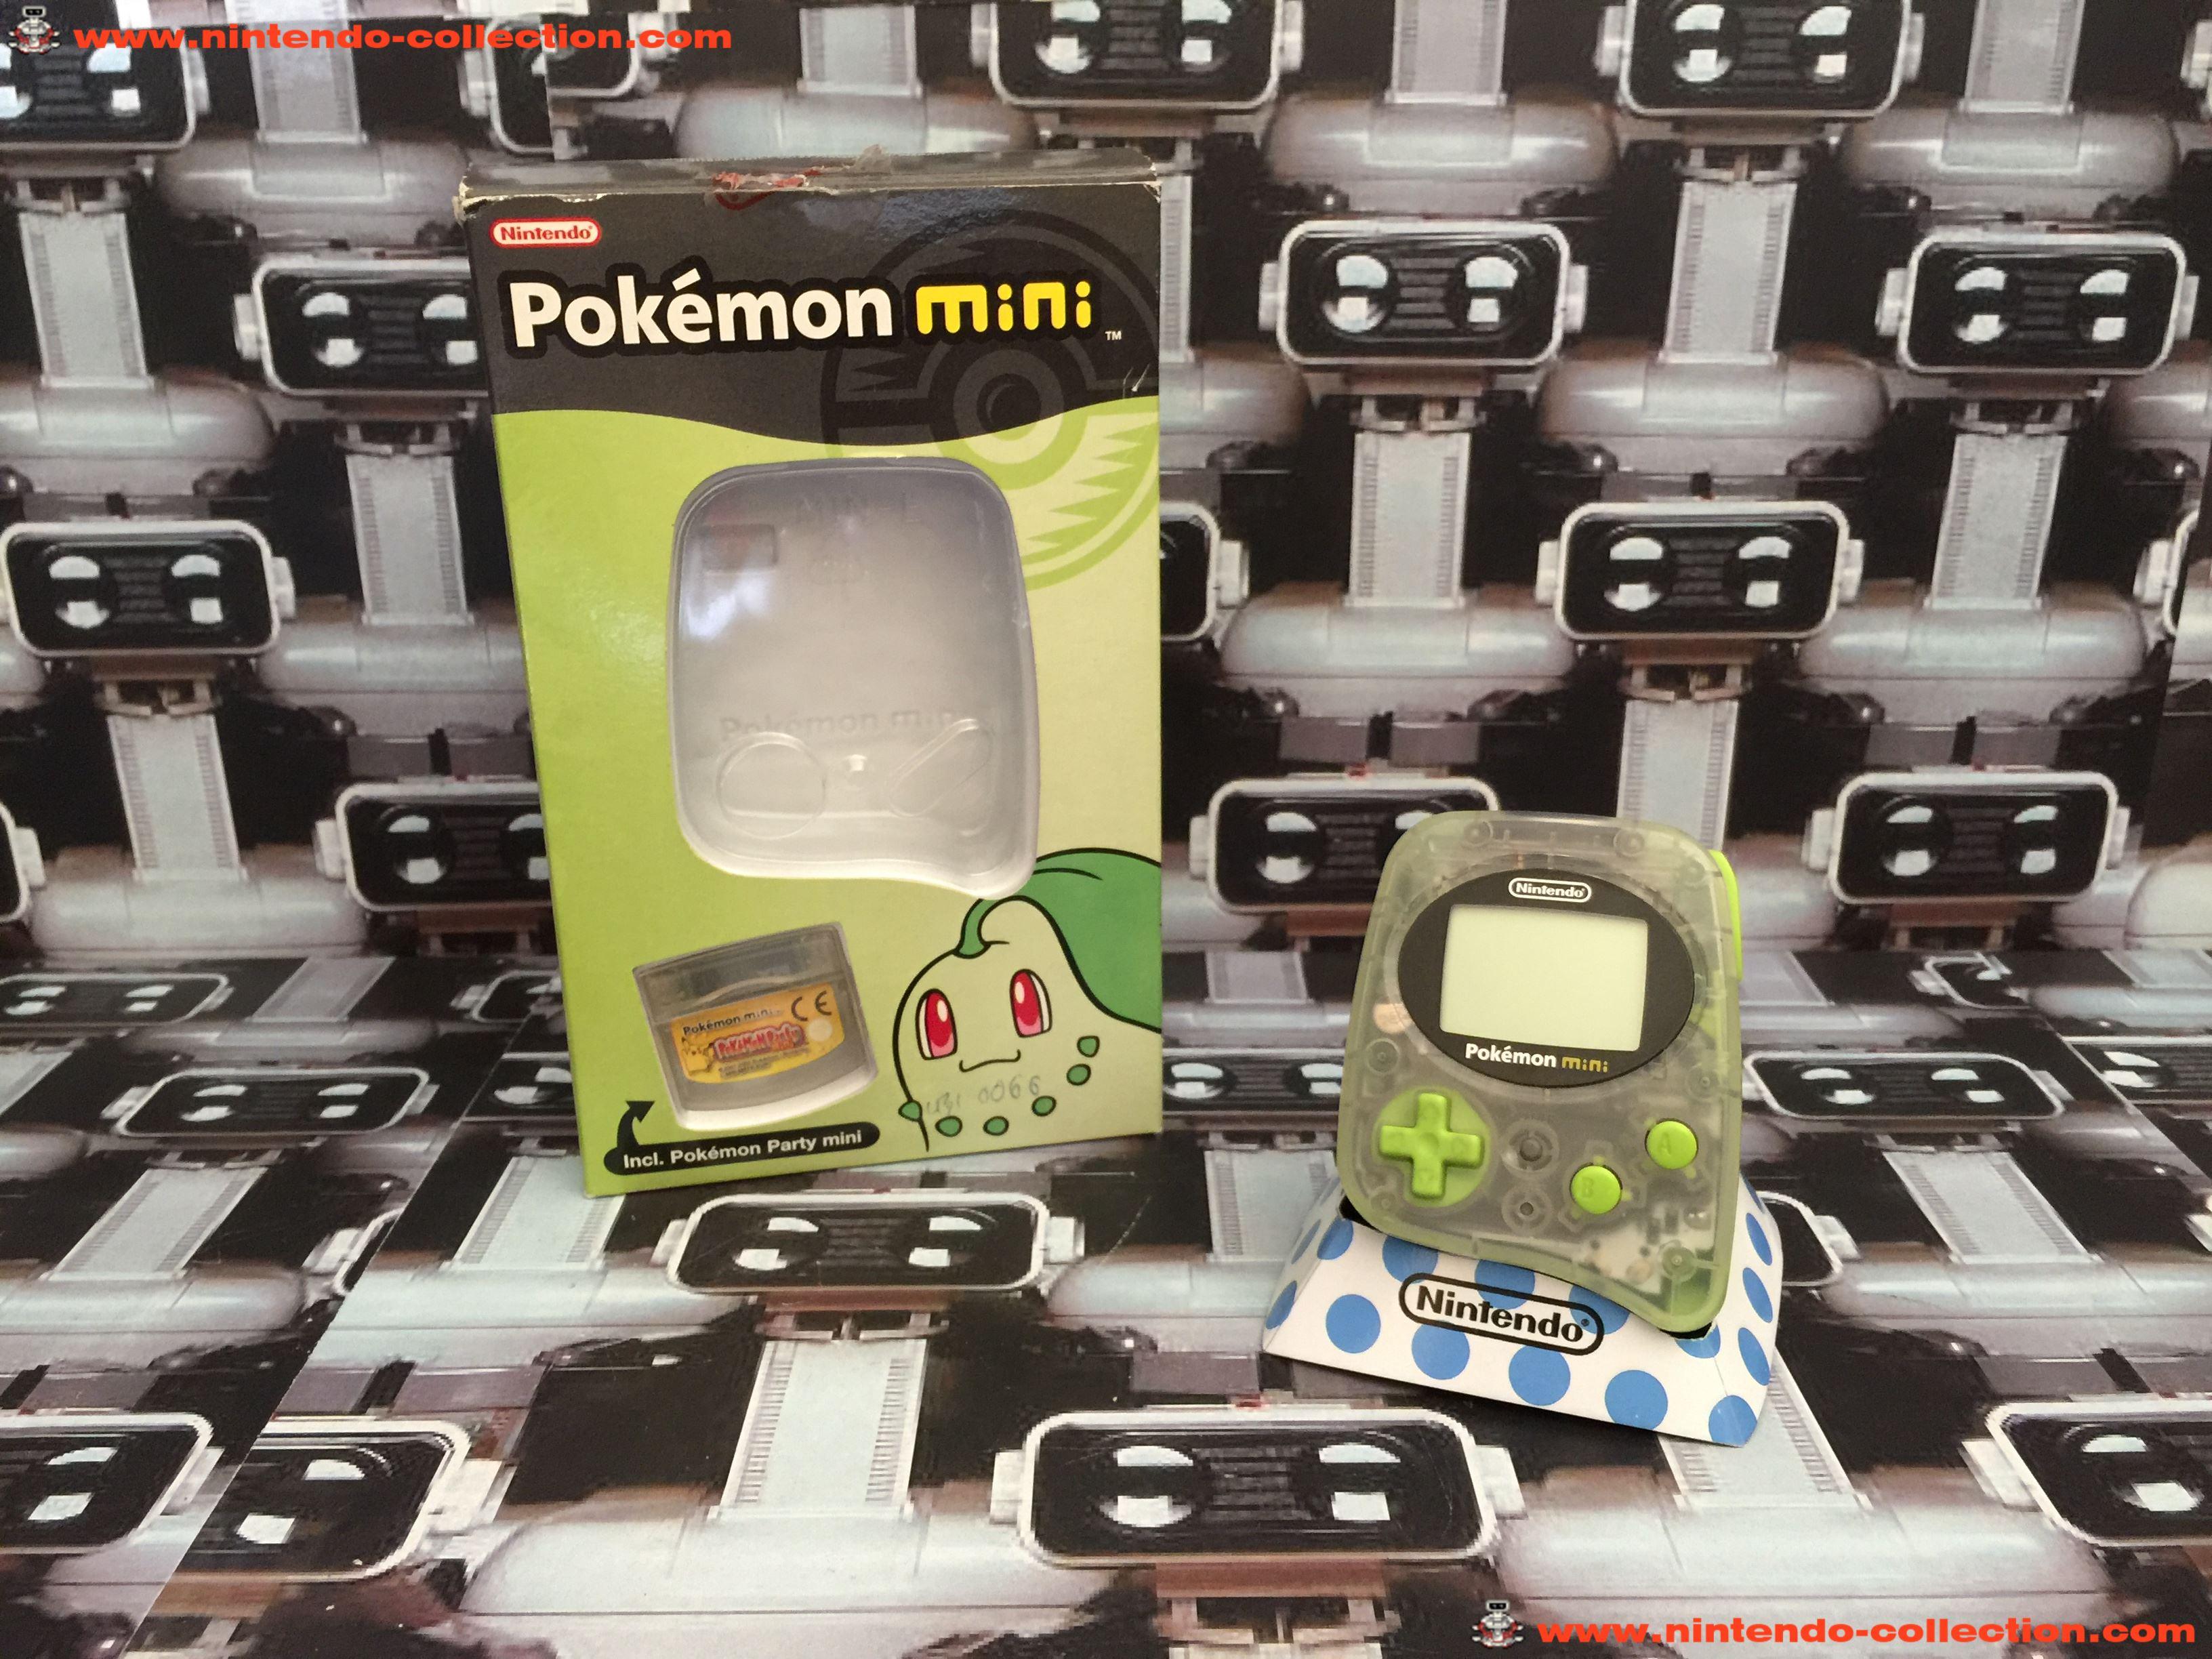 www.nintendo-collection.com - Mini Nintendo Pokemon Mini Green Verte